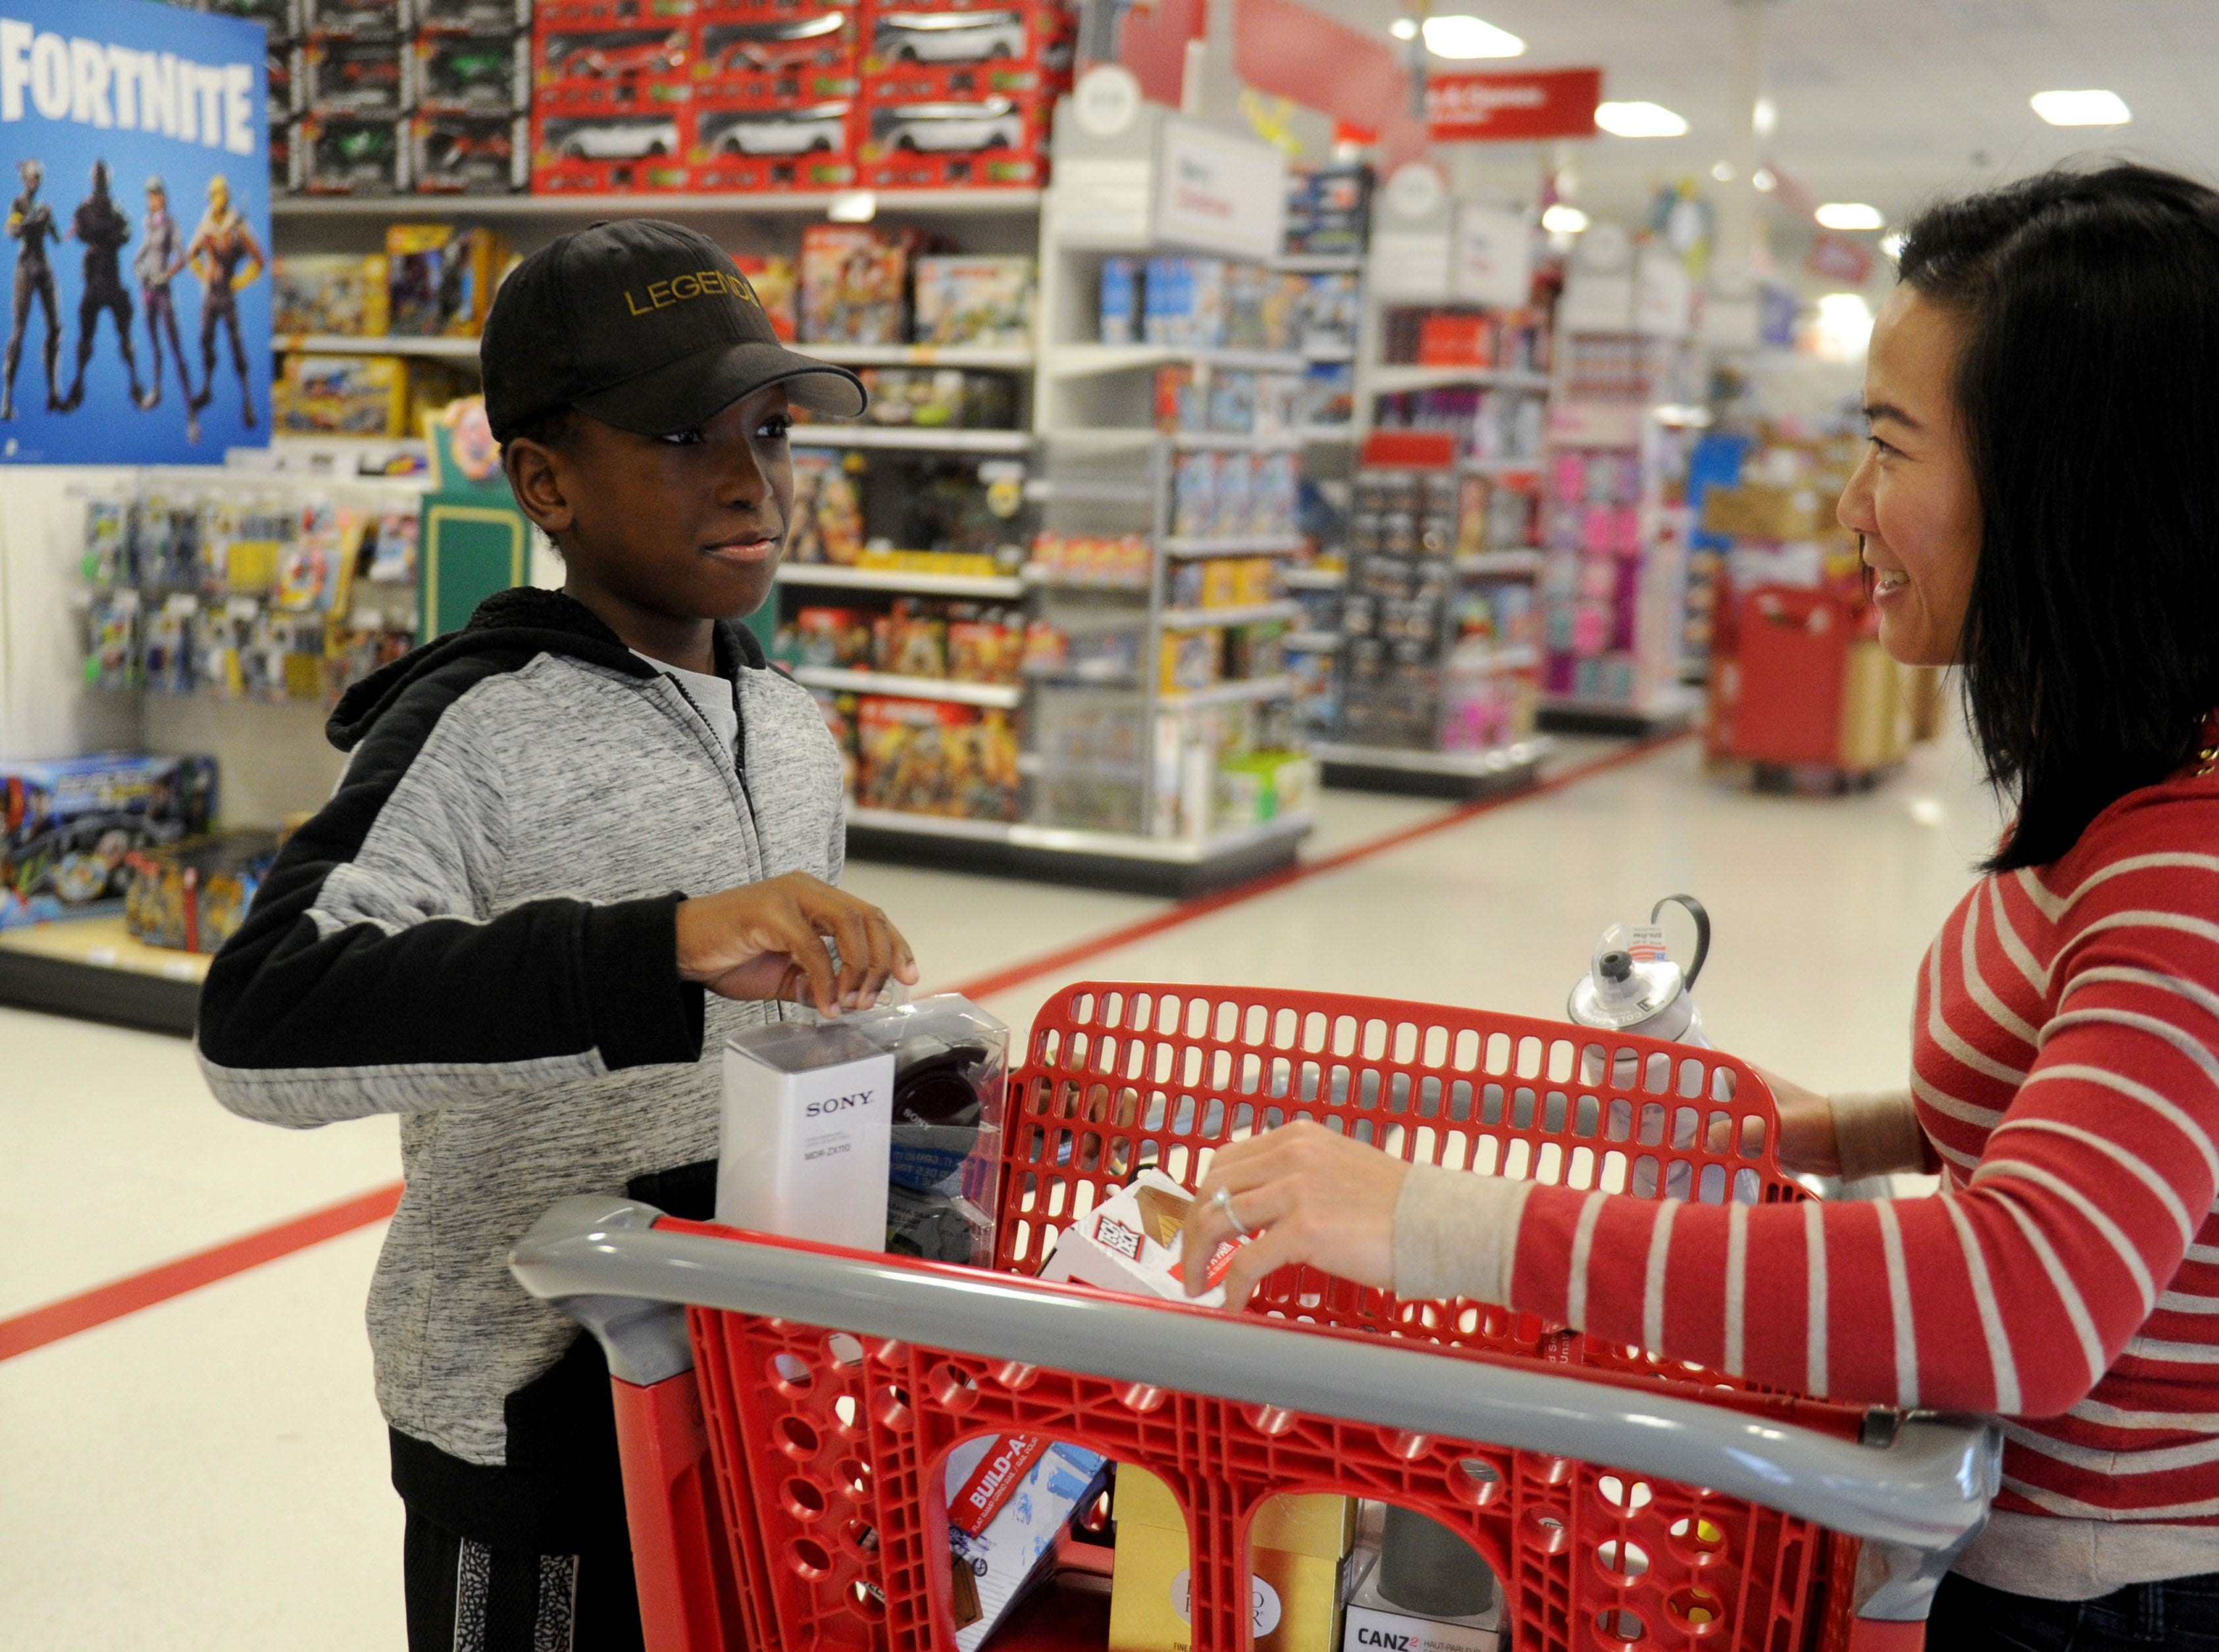 Samuel Opoku gets help from Kristina Tansavatdi, with the Rotary Club of Westlake Village, with picking some toys and a gift for his mom. The club hosted a shopping spree at Target for 36 members of the Boys & Girls Club. The children, each with $110 to spend, were paired with 36 volunteers, and they also got two $10 gift cards so they could buy gifts for someone else.